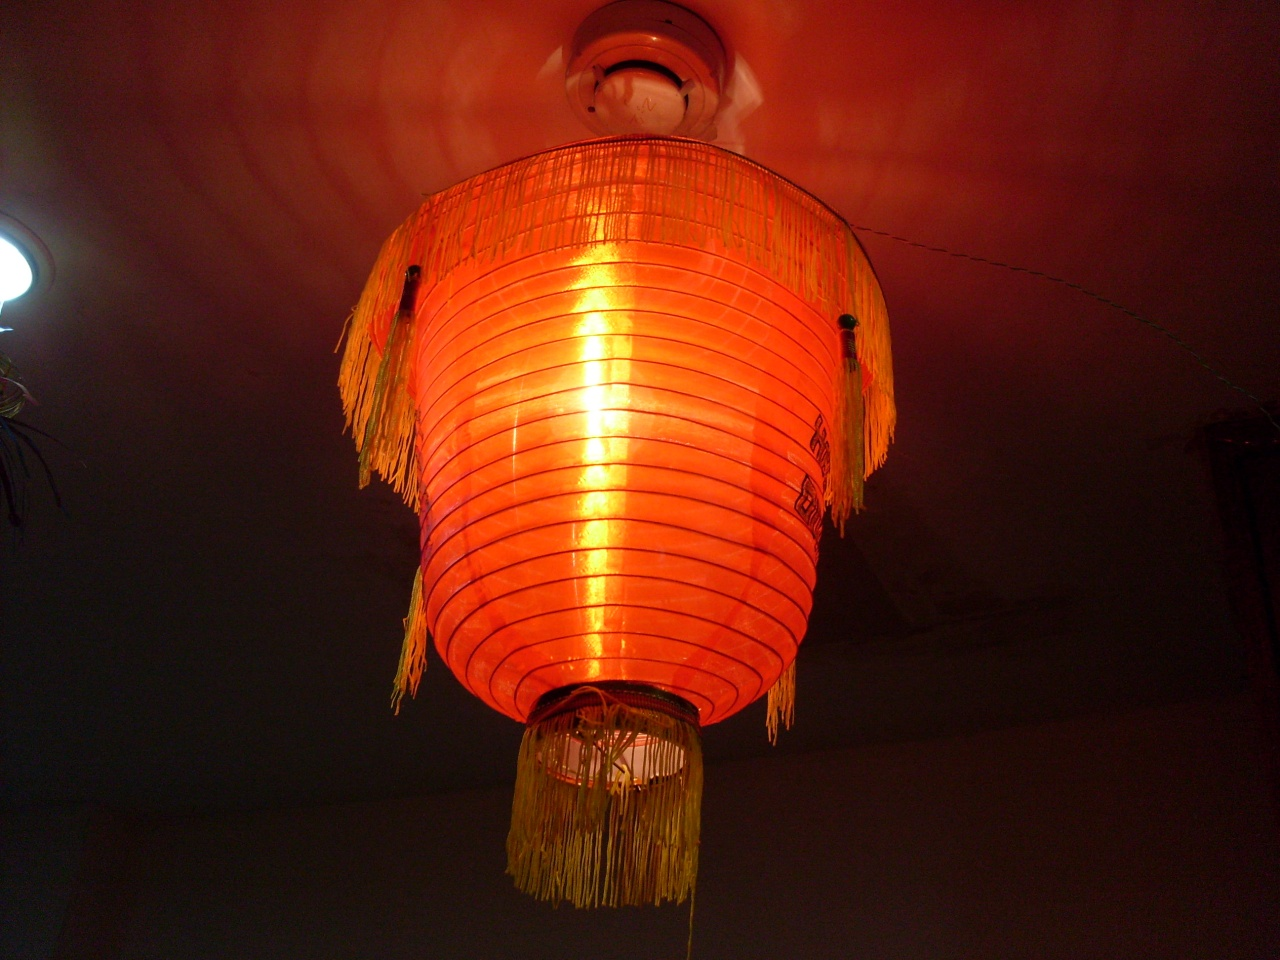 China Diwali Light Diwali Lamp Lantern Decoration Hindu Festivals